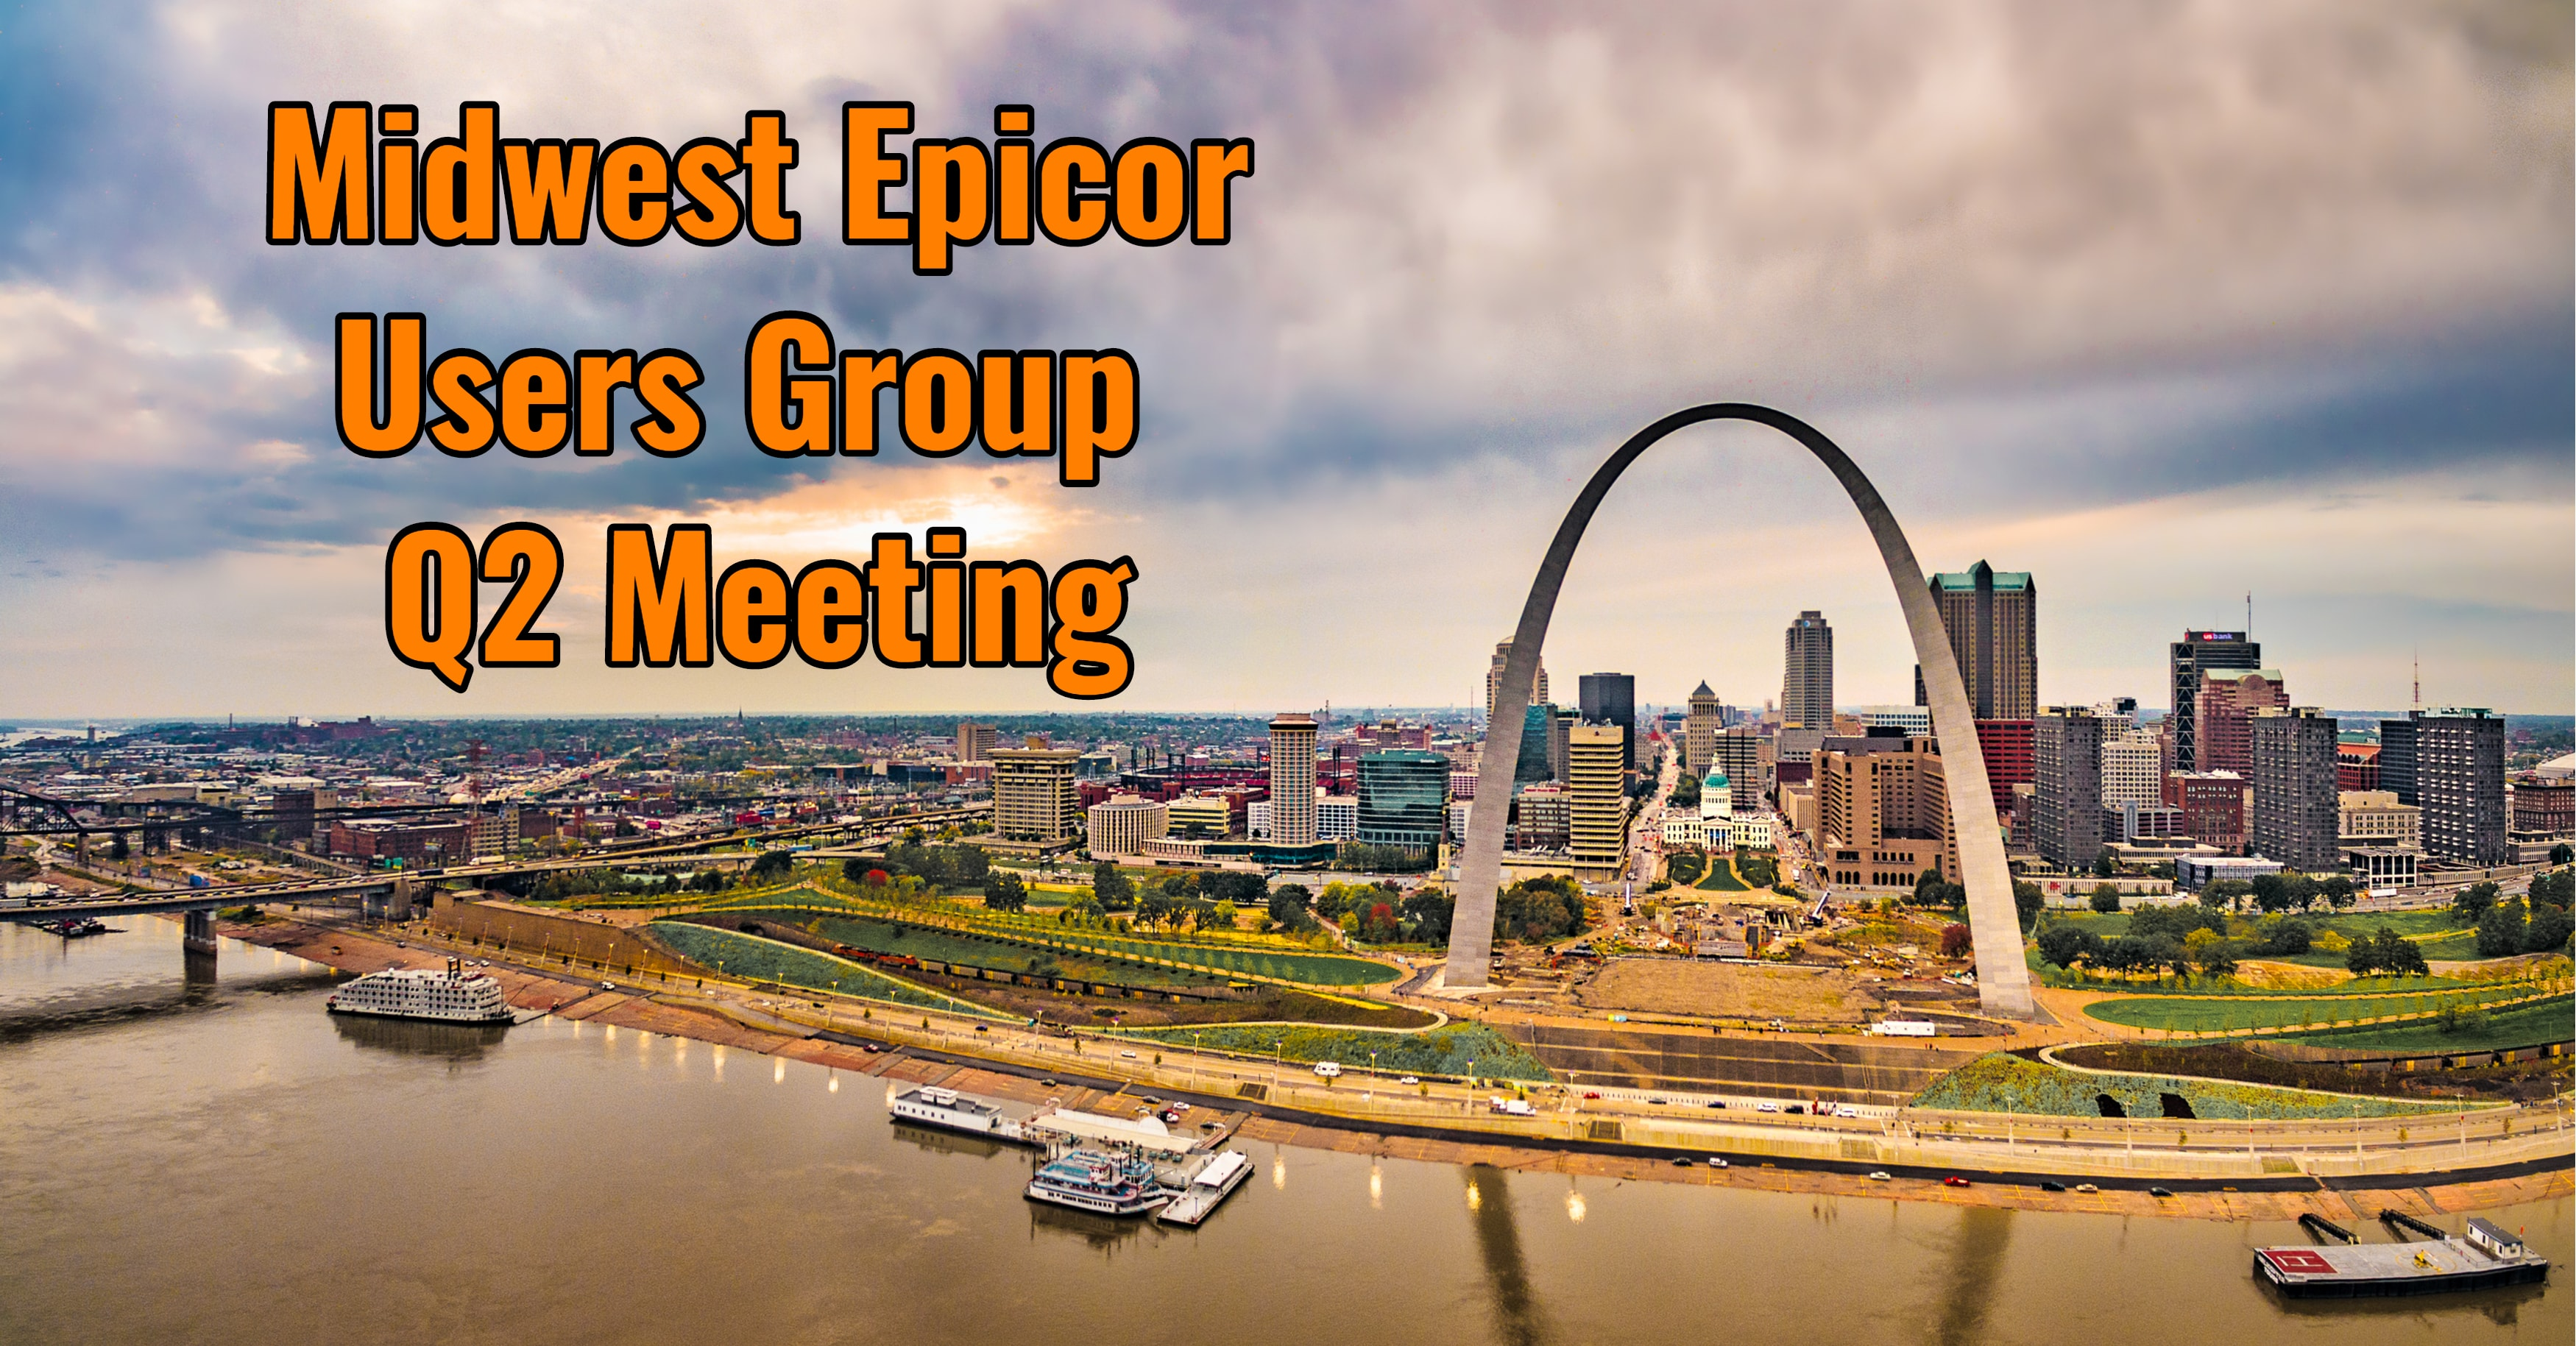 Attend this Quarter's Midwest Epicor Users Group Meeting!